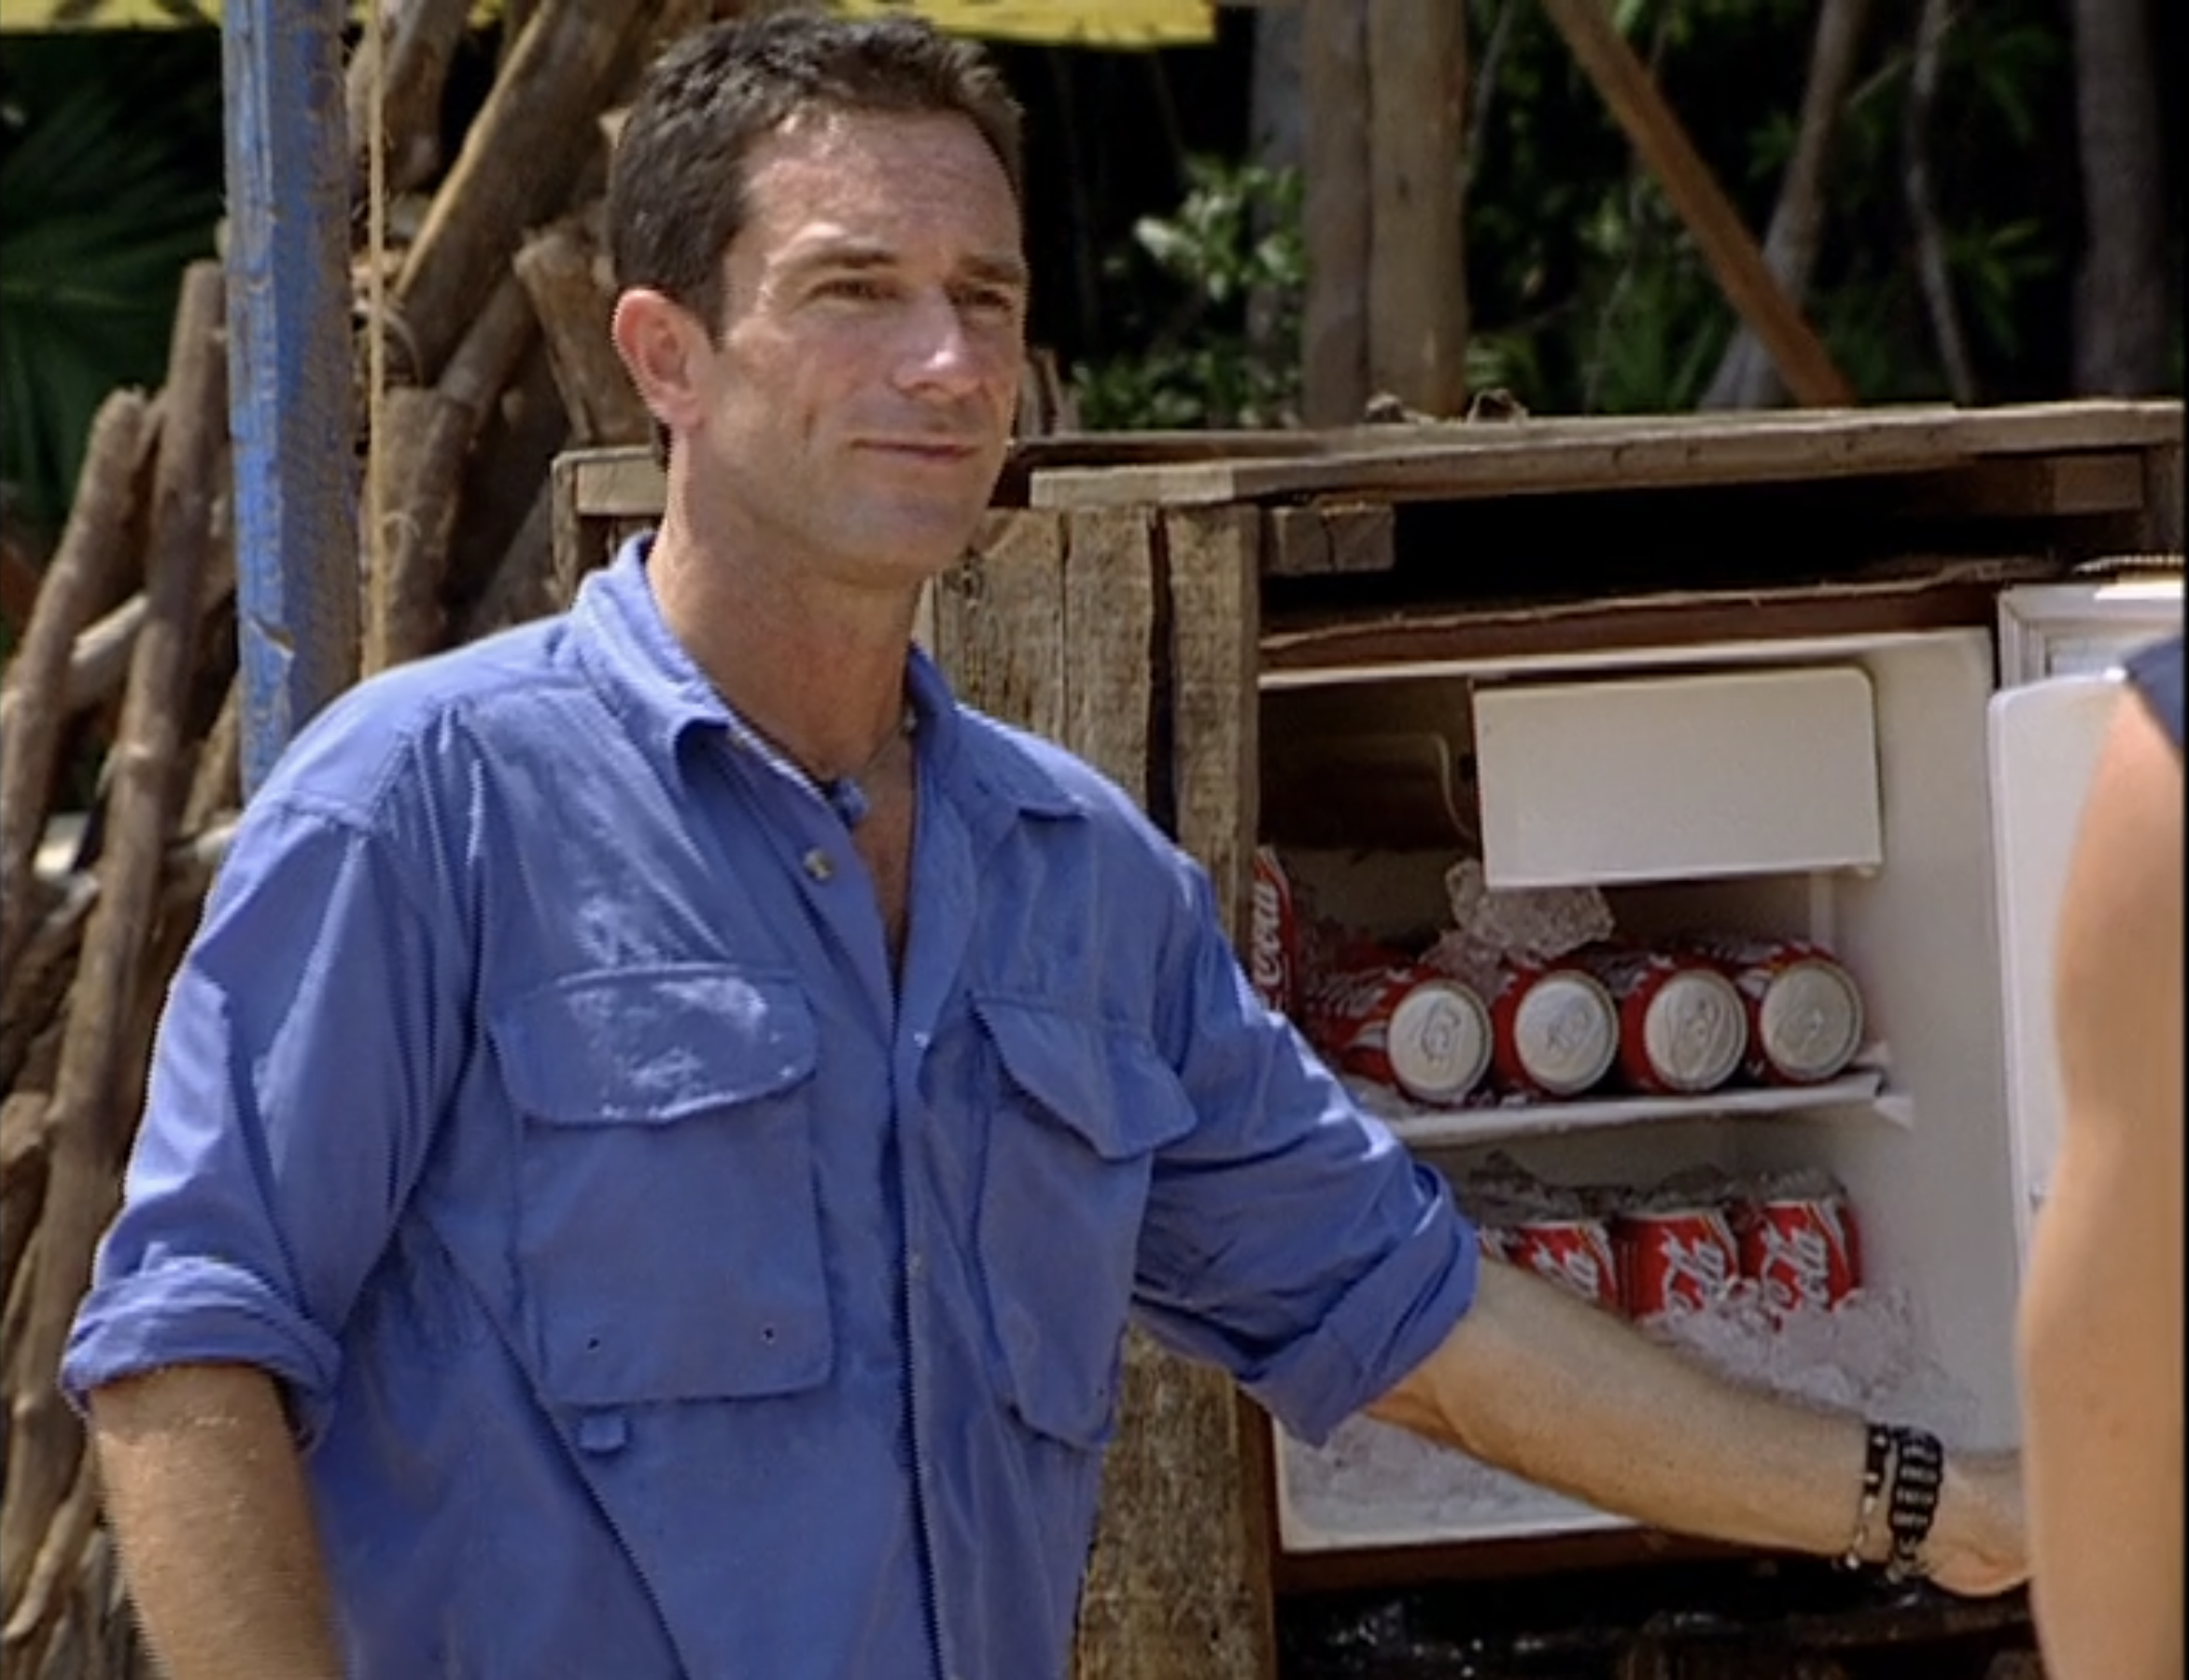 Jeff Probst stands next to a wodden fridge filled with Coke